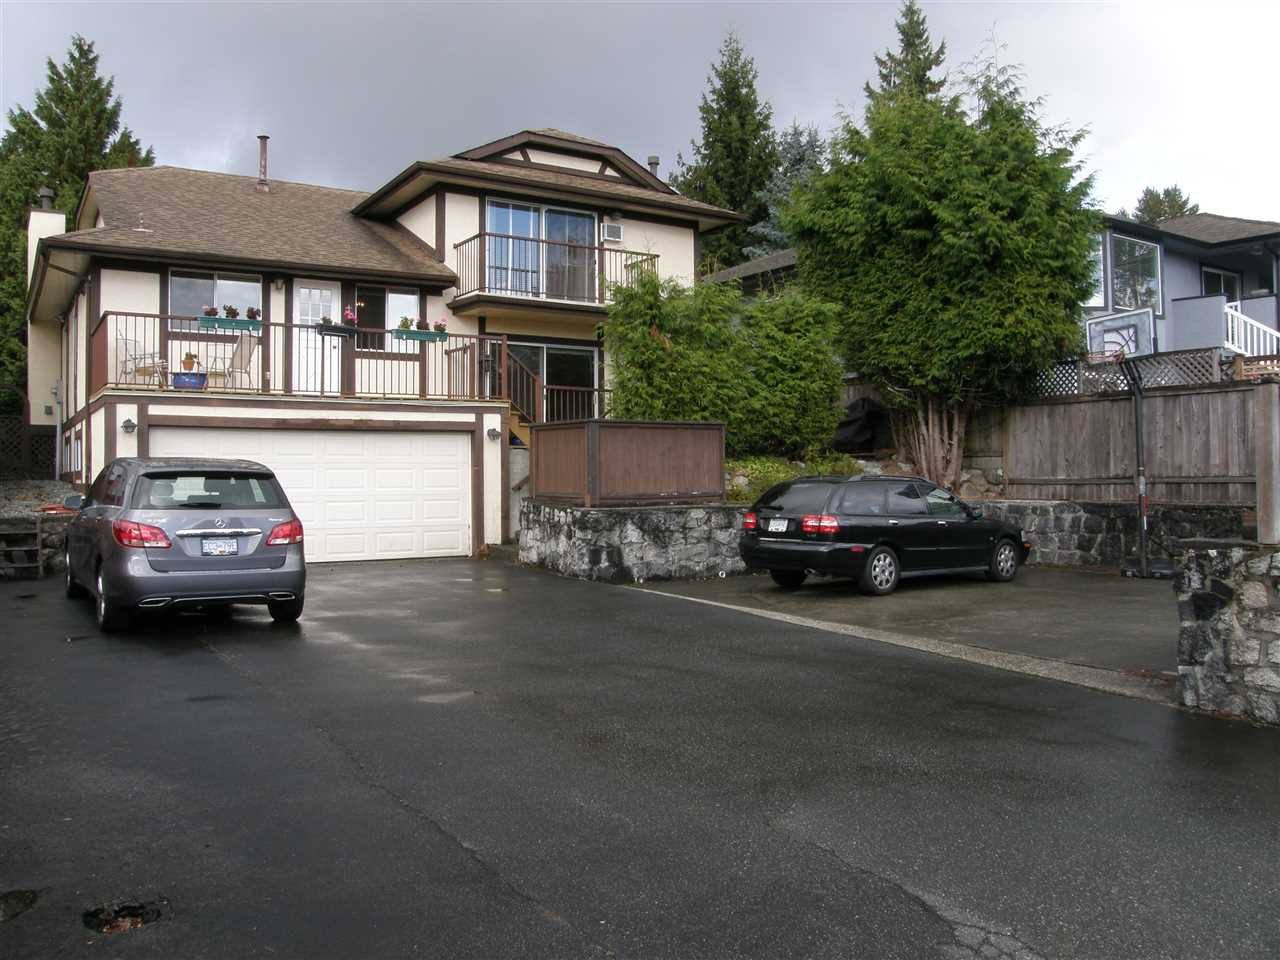 Main Photo: 775 E 29TH STREET in North Vancouver: Tempe House for sale : MLS®# R2213909